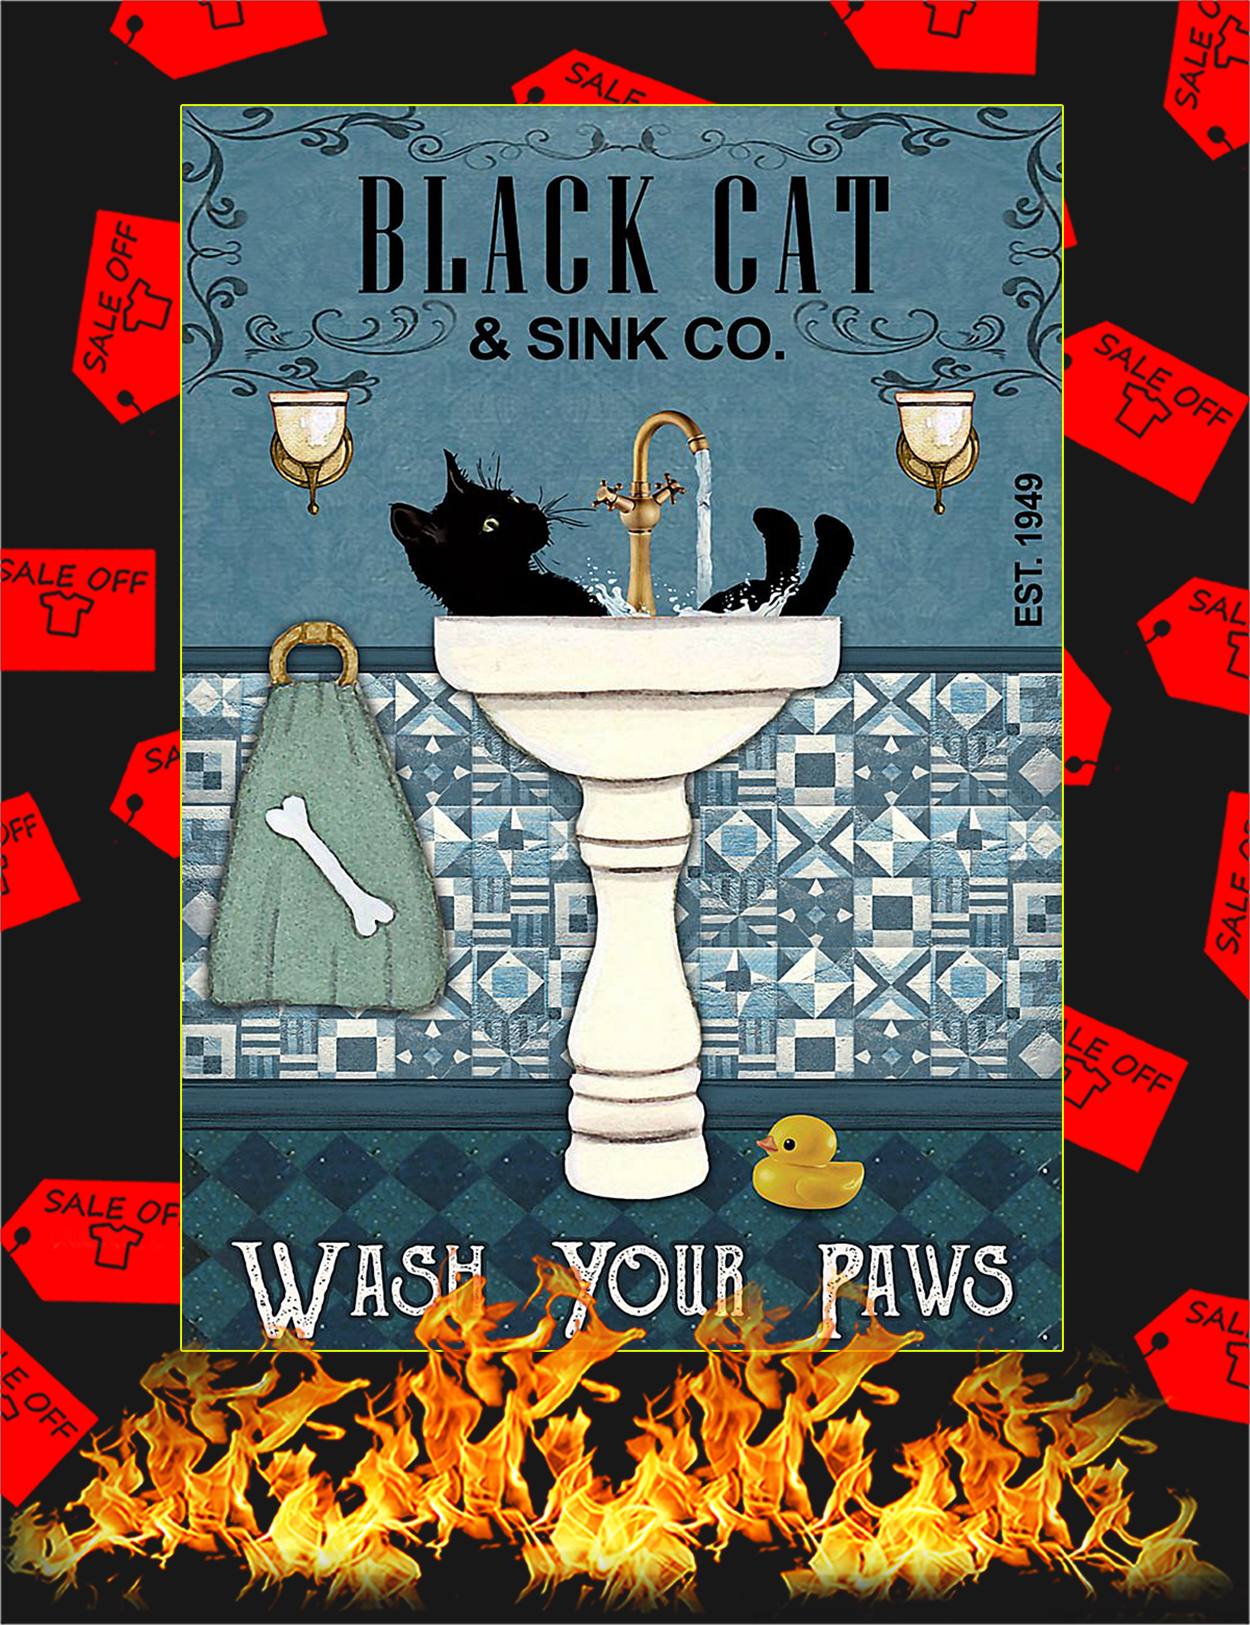 Black cat sink co wash your paws poster - A3